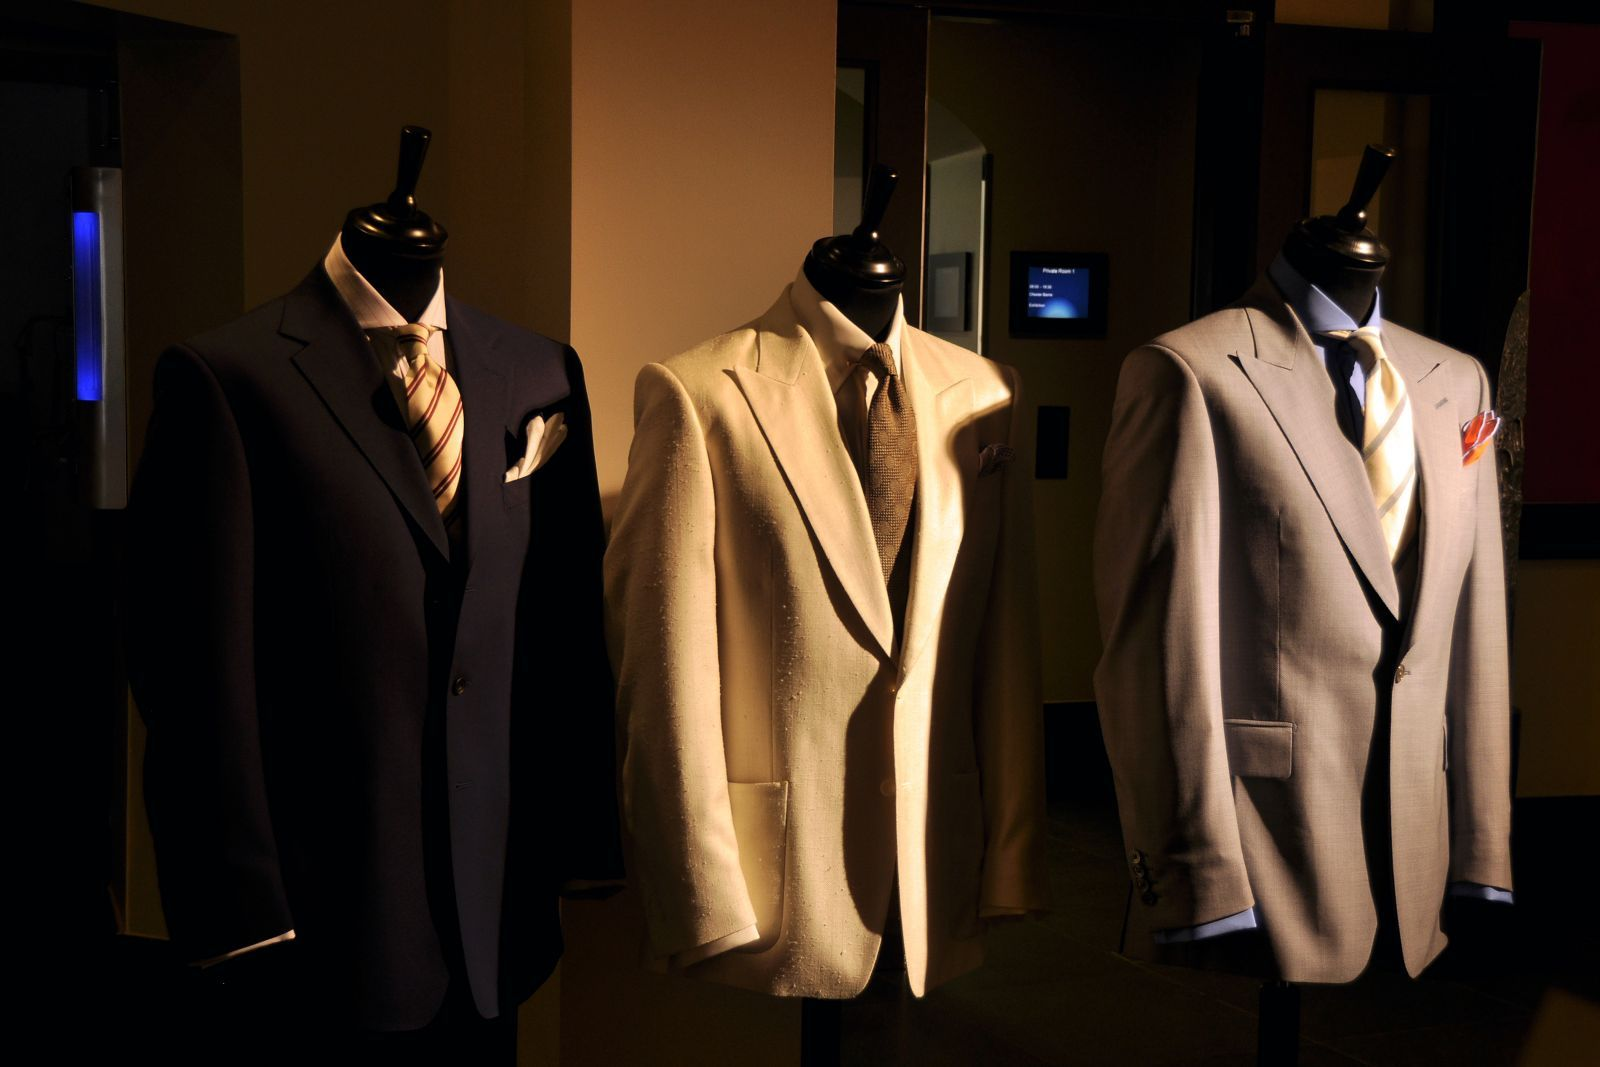 D3 Chester Barrie (1)  Copyright Photo by Nigel Pacquette for Modelixir  http://www.modelixir.com/gallery/image/514-d3-chester-barrie-1/